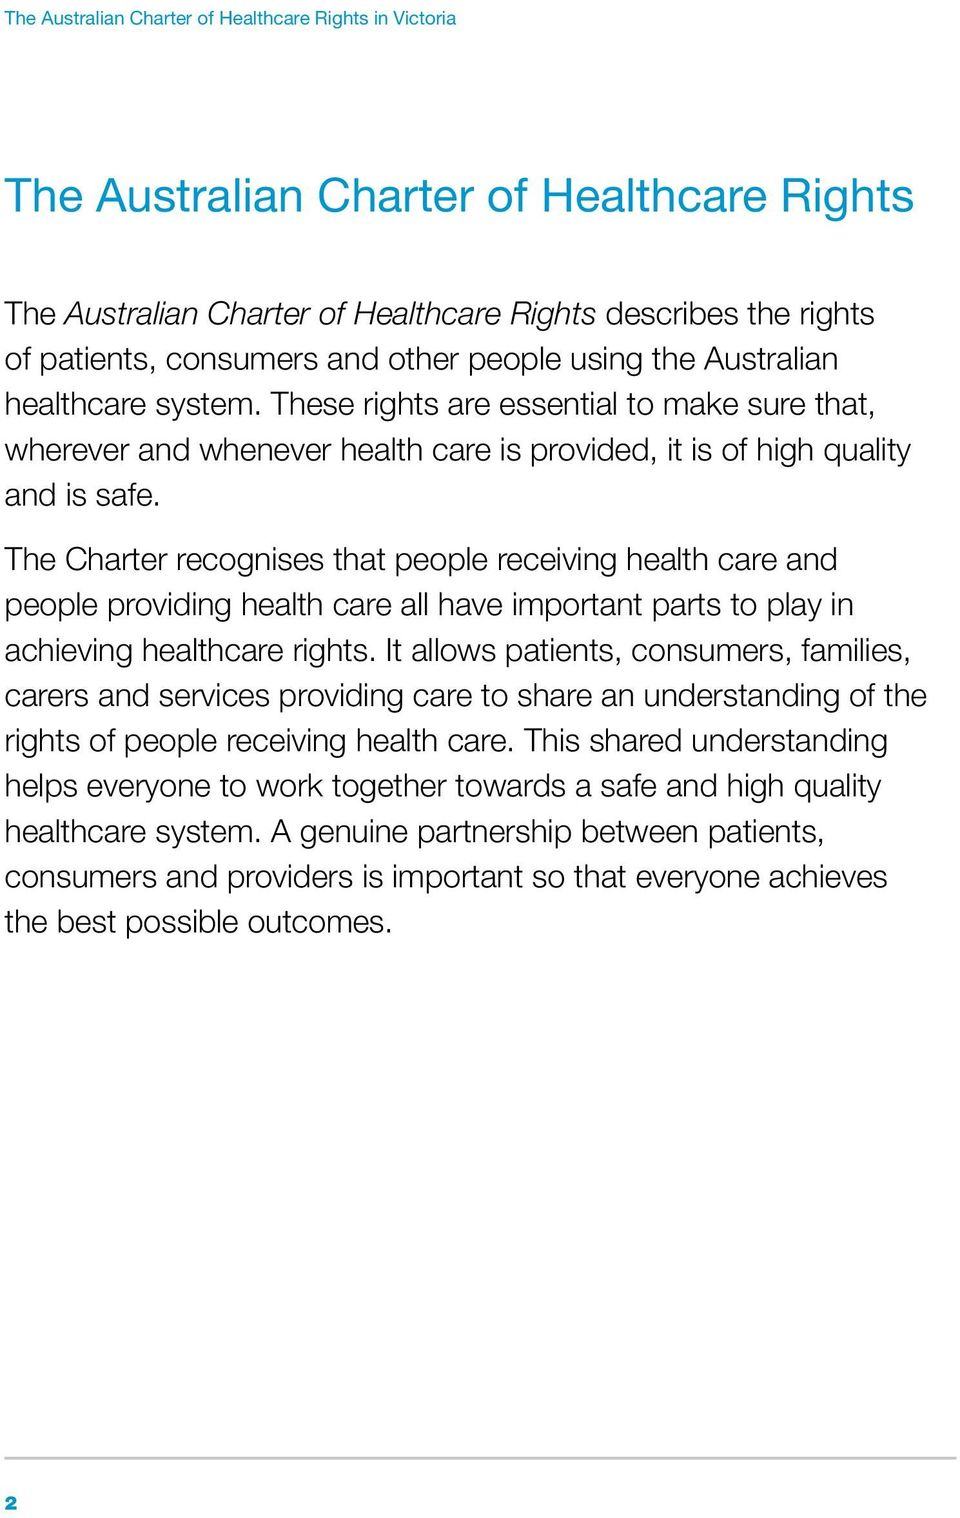 The Charter recognises that people receiving health care and people providing health care all have important parts to play in achieving healthcare rights.